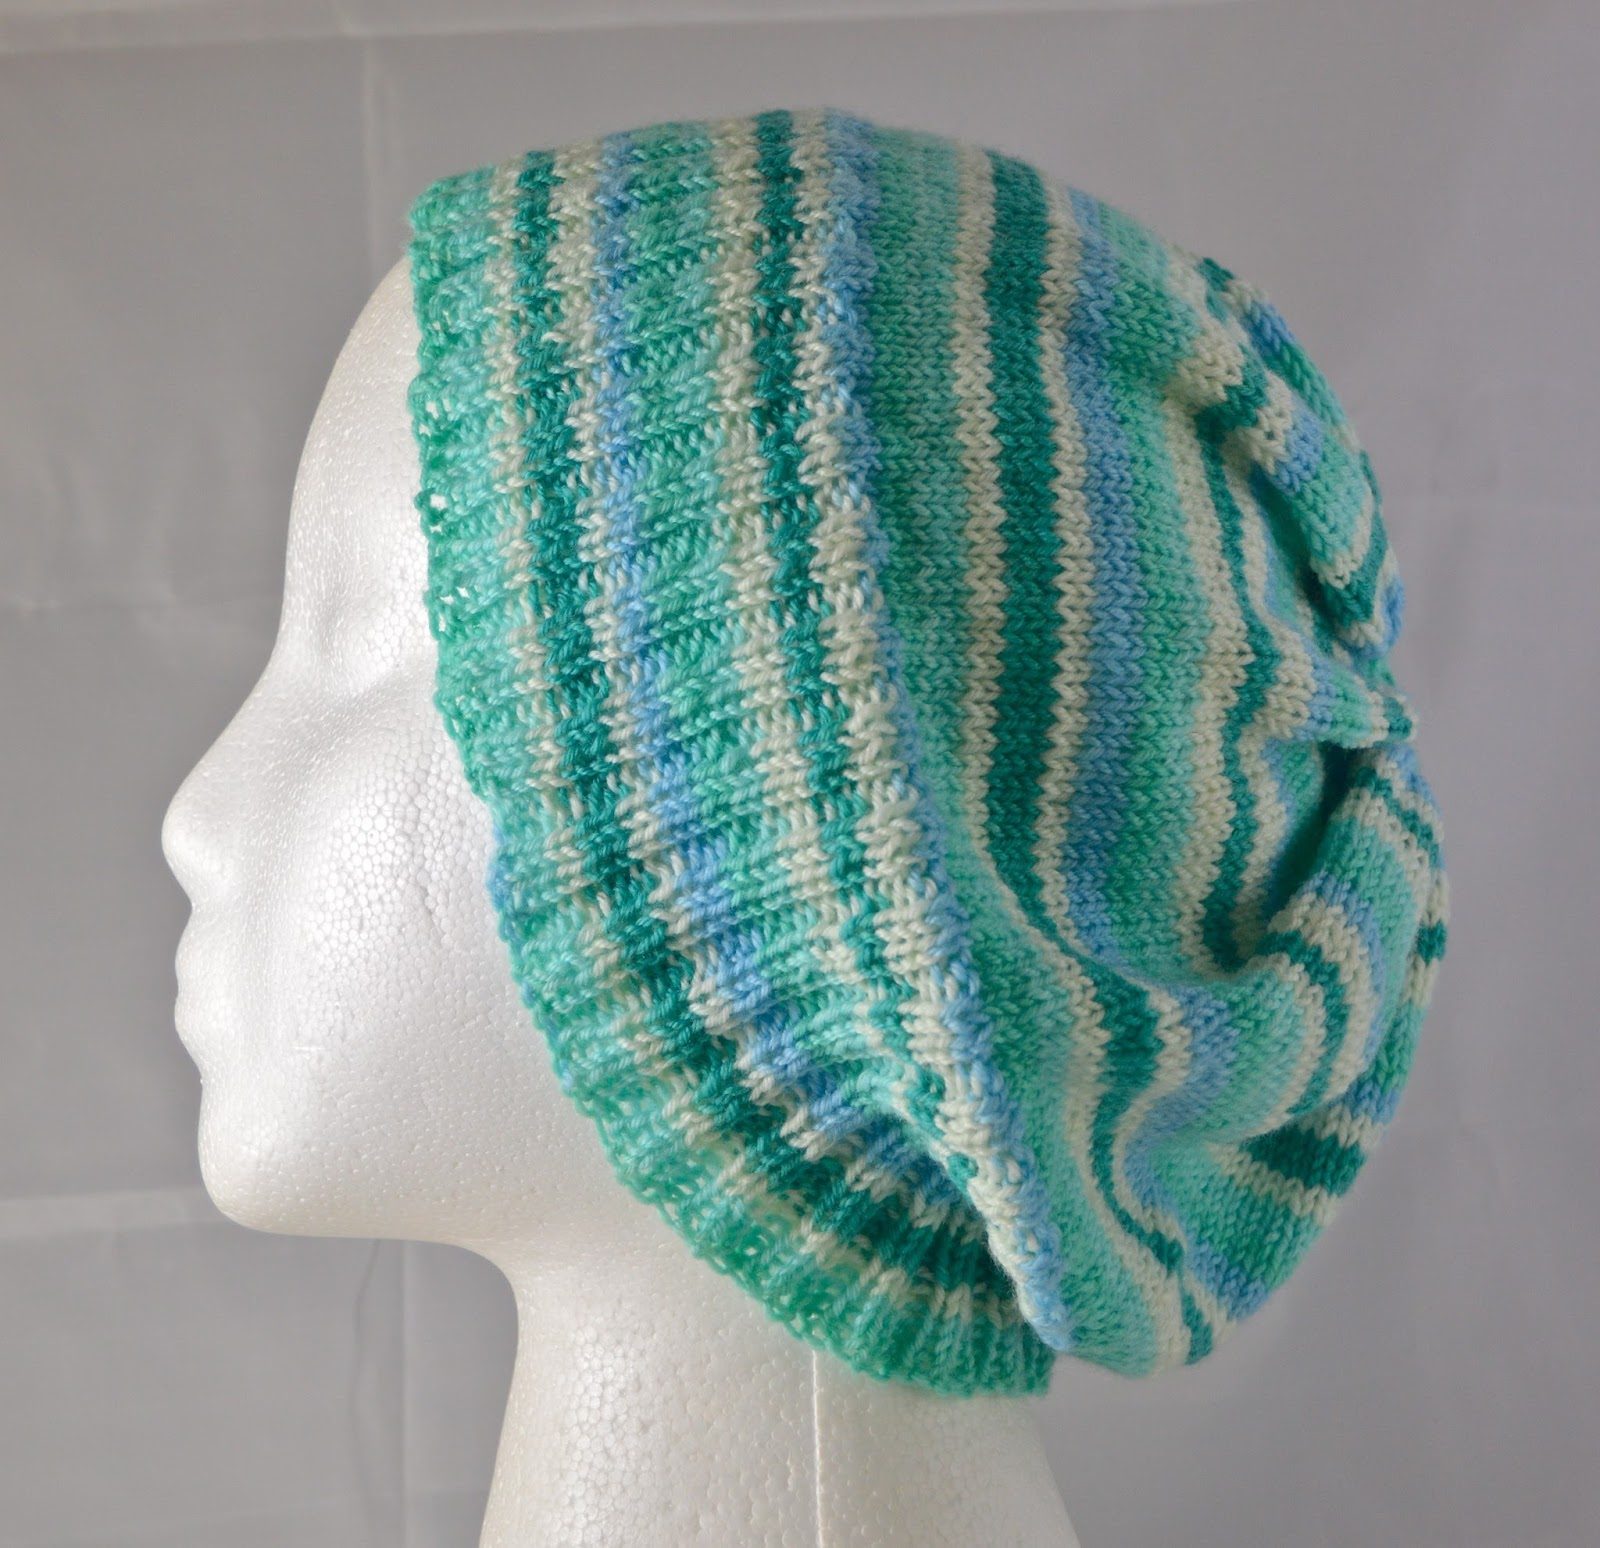 9e94b60f26d mint green striped hat for sale at https   www.etsy.com